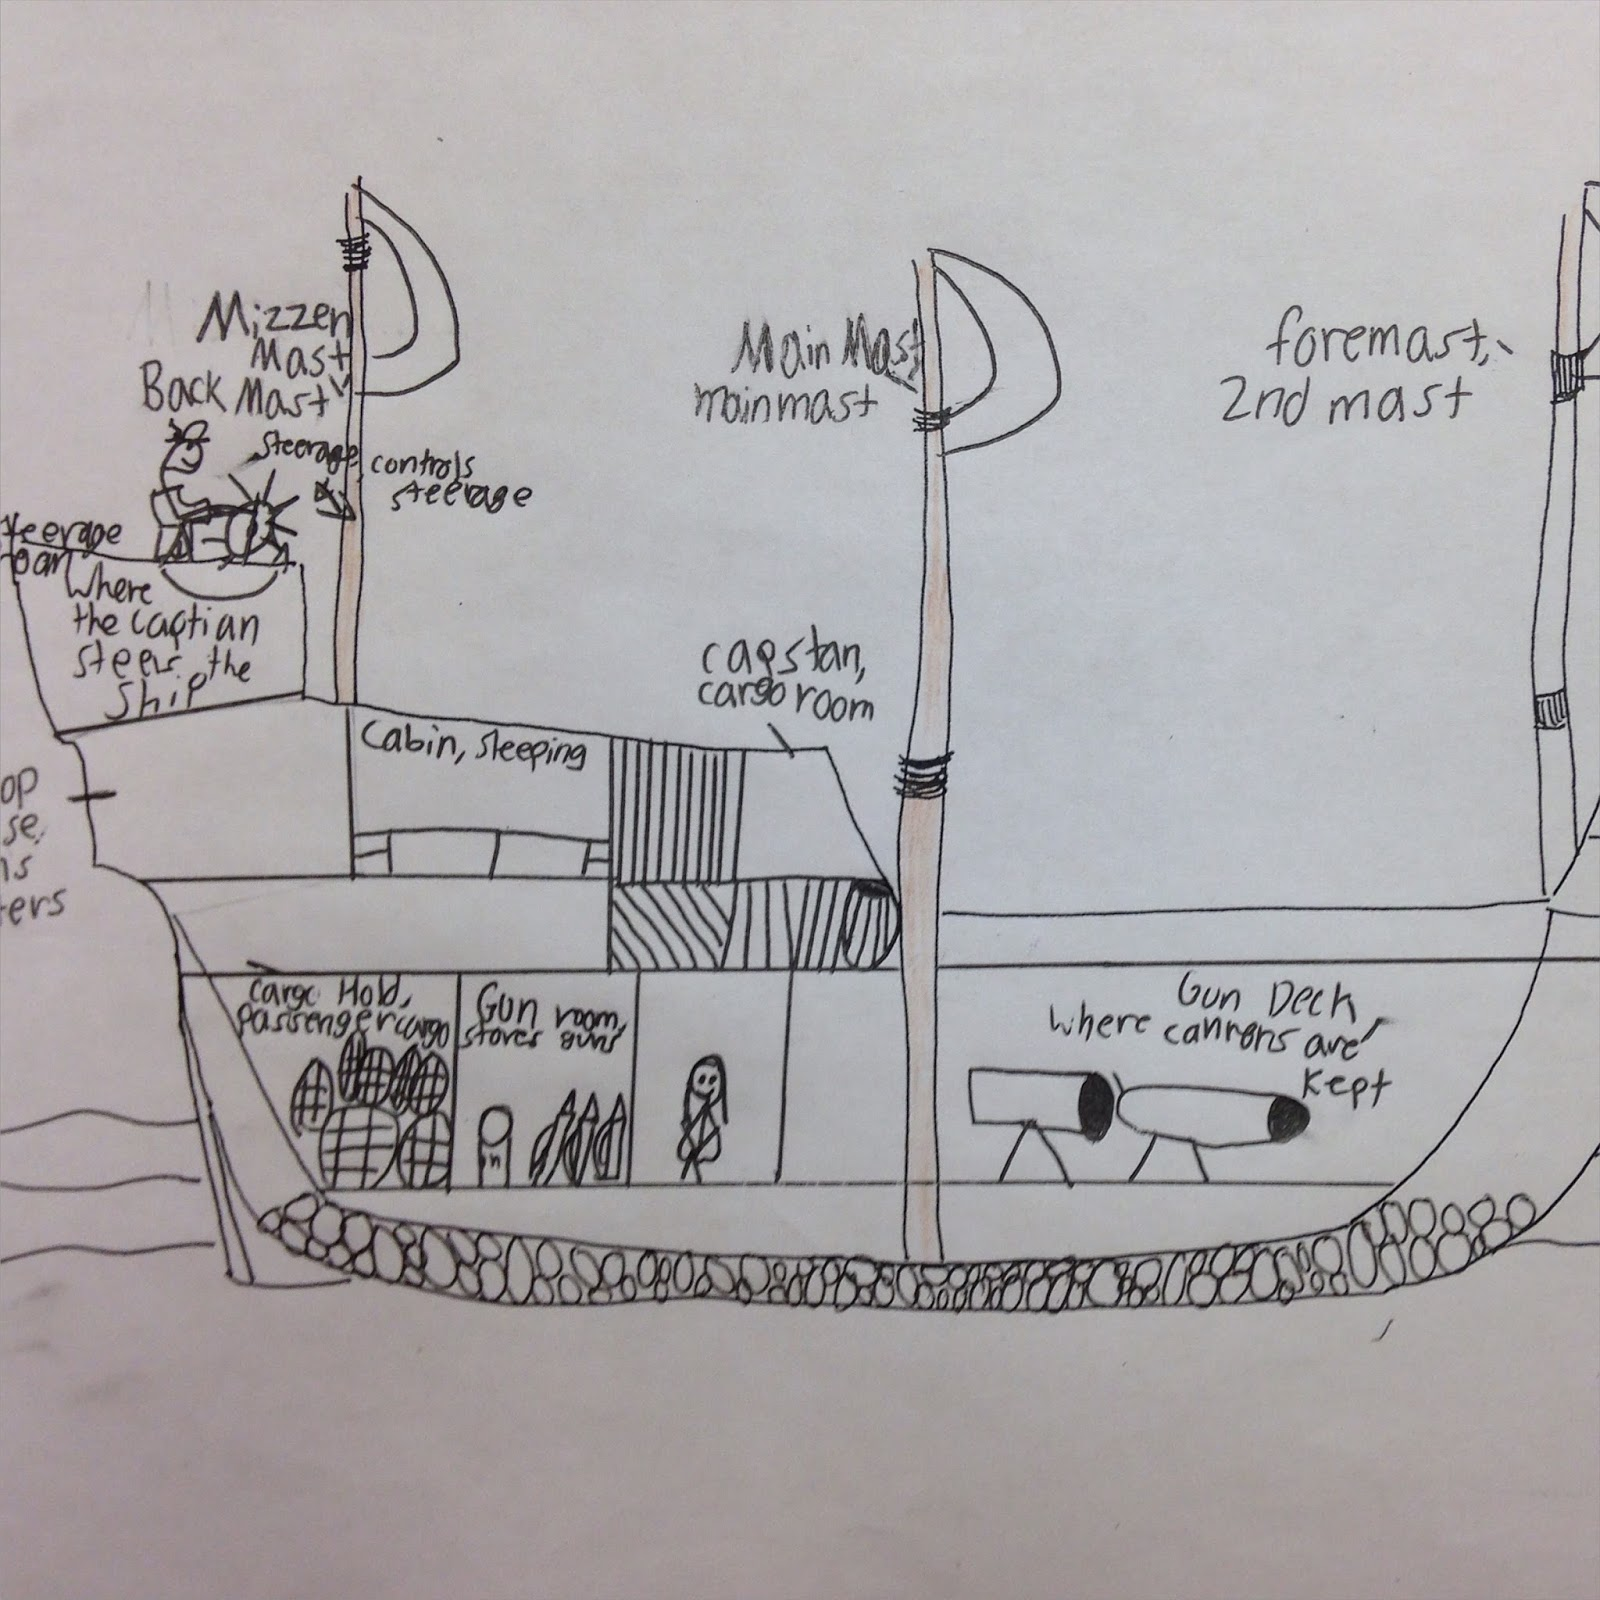 labeled ship diagram worcester greenstar wiring classroom freebies too mayflower diagrams